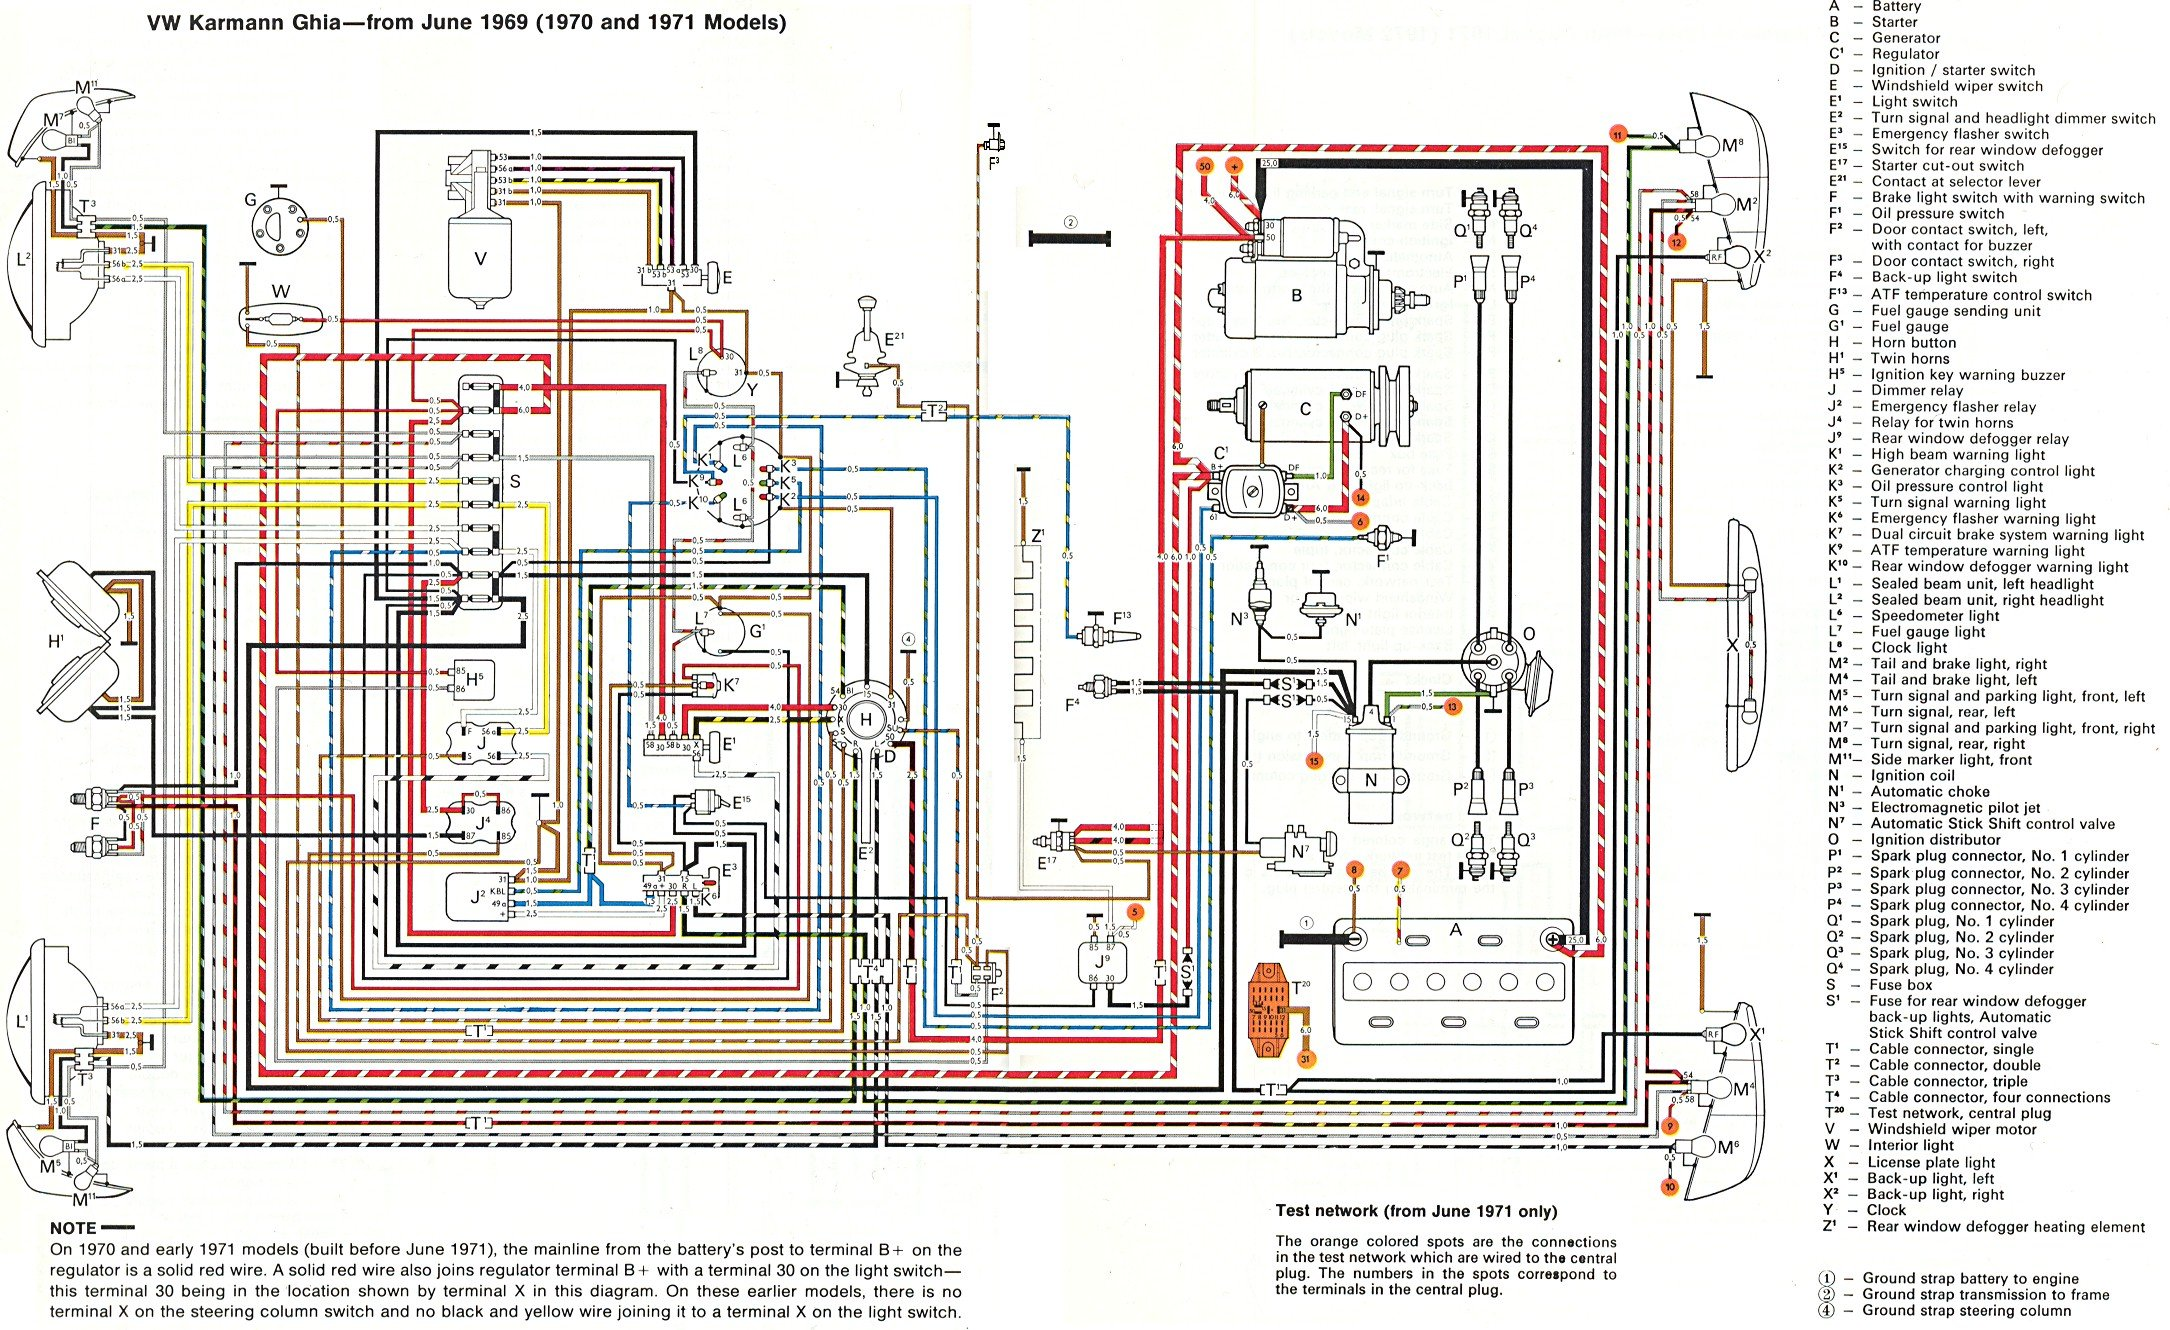 Karmann Ghia Wiring Diagrams 1975 Plymouth Valiant Diagram